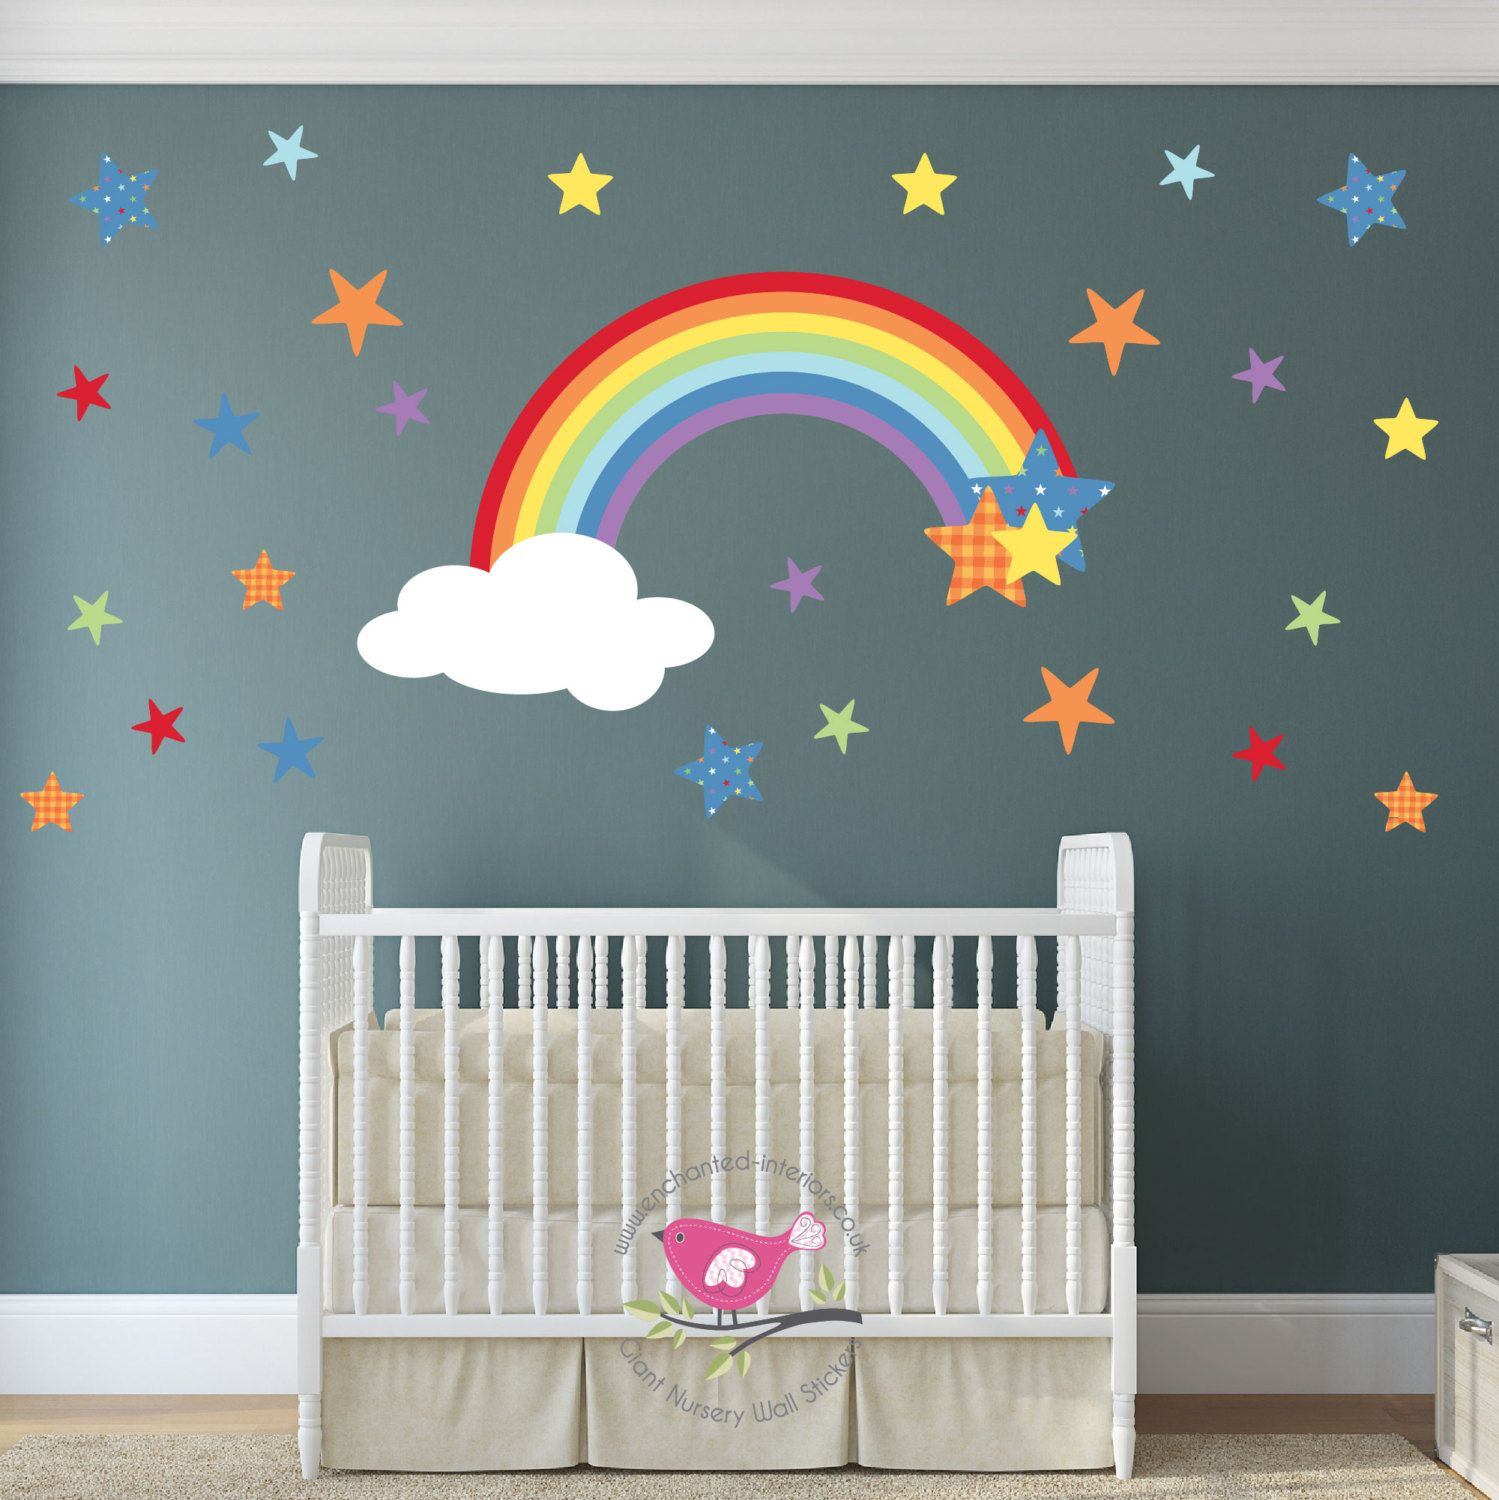 magical rainbow wall decal star wall stickers boy or girl magical rainbow wall decal star wall stickers boy or girl nursery decor baby shower